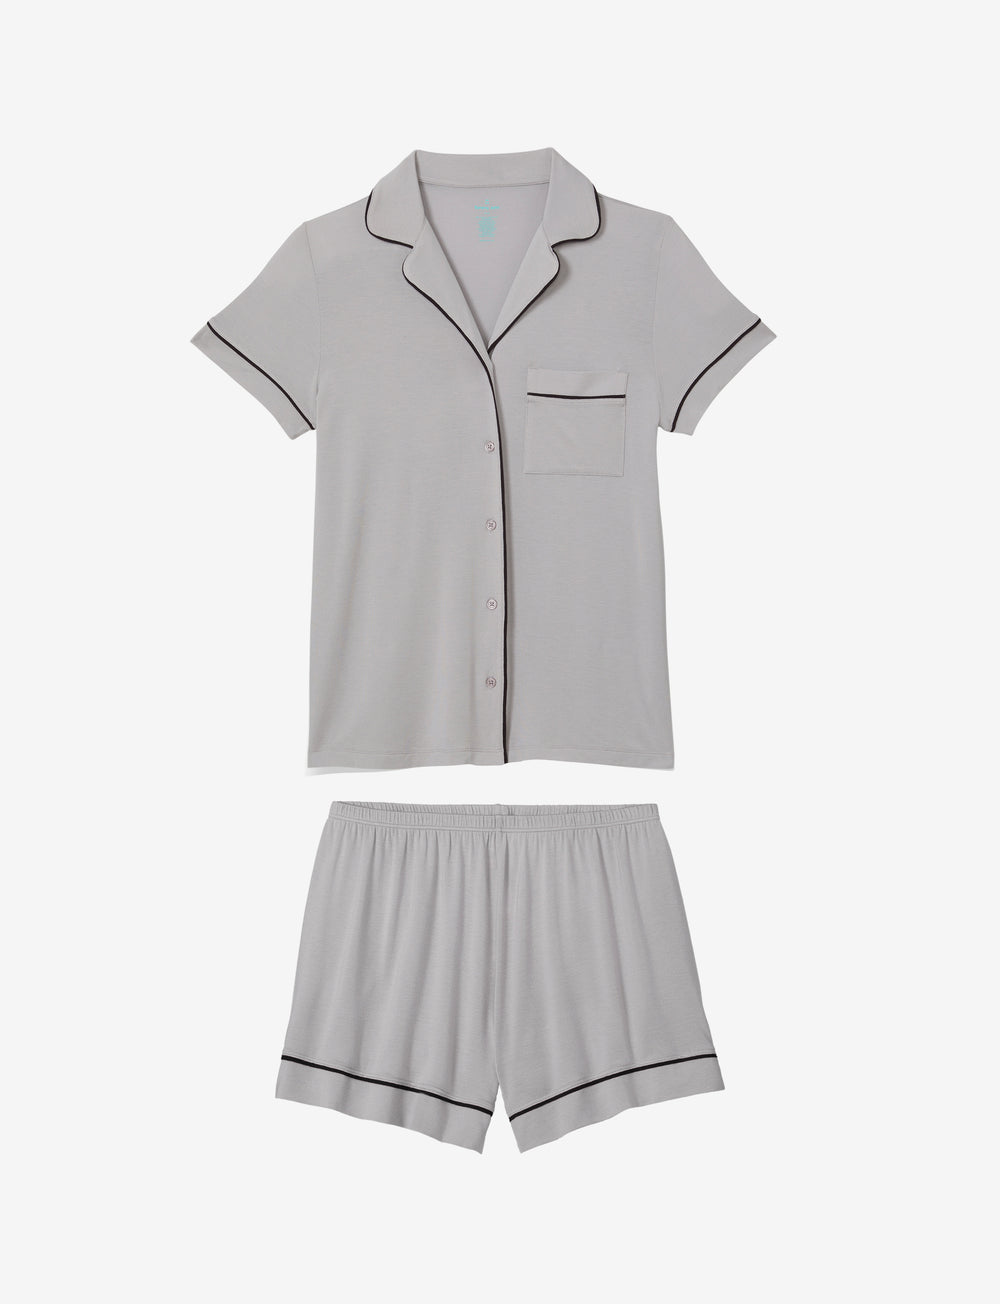 Mother's Day Silver Sconce Pajama Top & Short Set Details Image